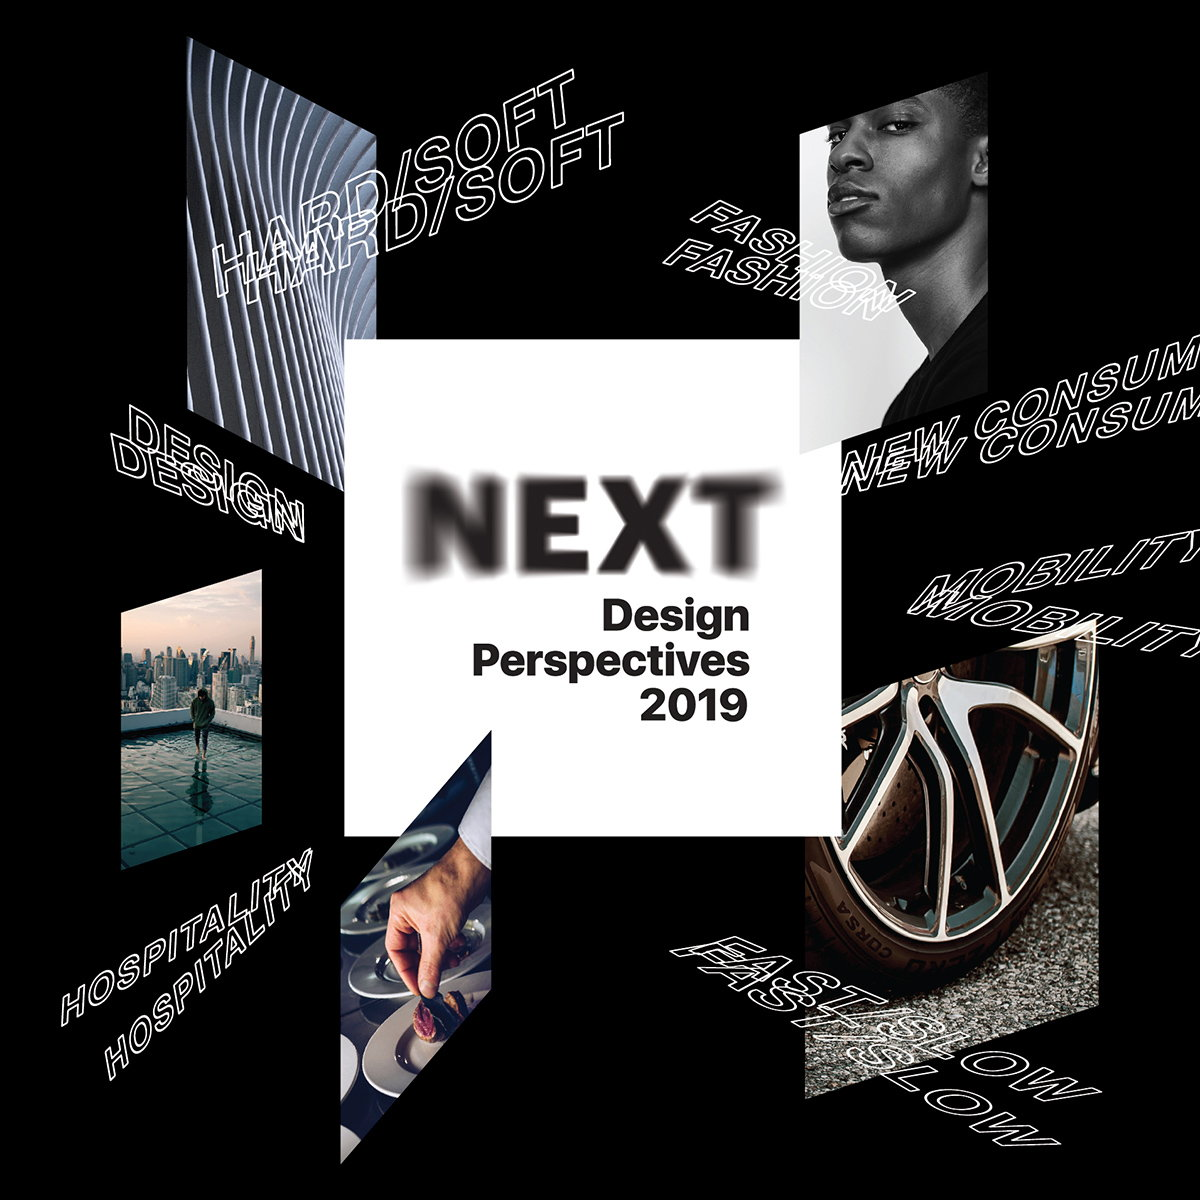 WGSN Reveals Future Trends for Design and Creativity at 2019 Next Design Perspectives Conference